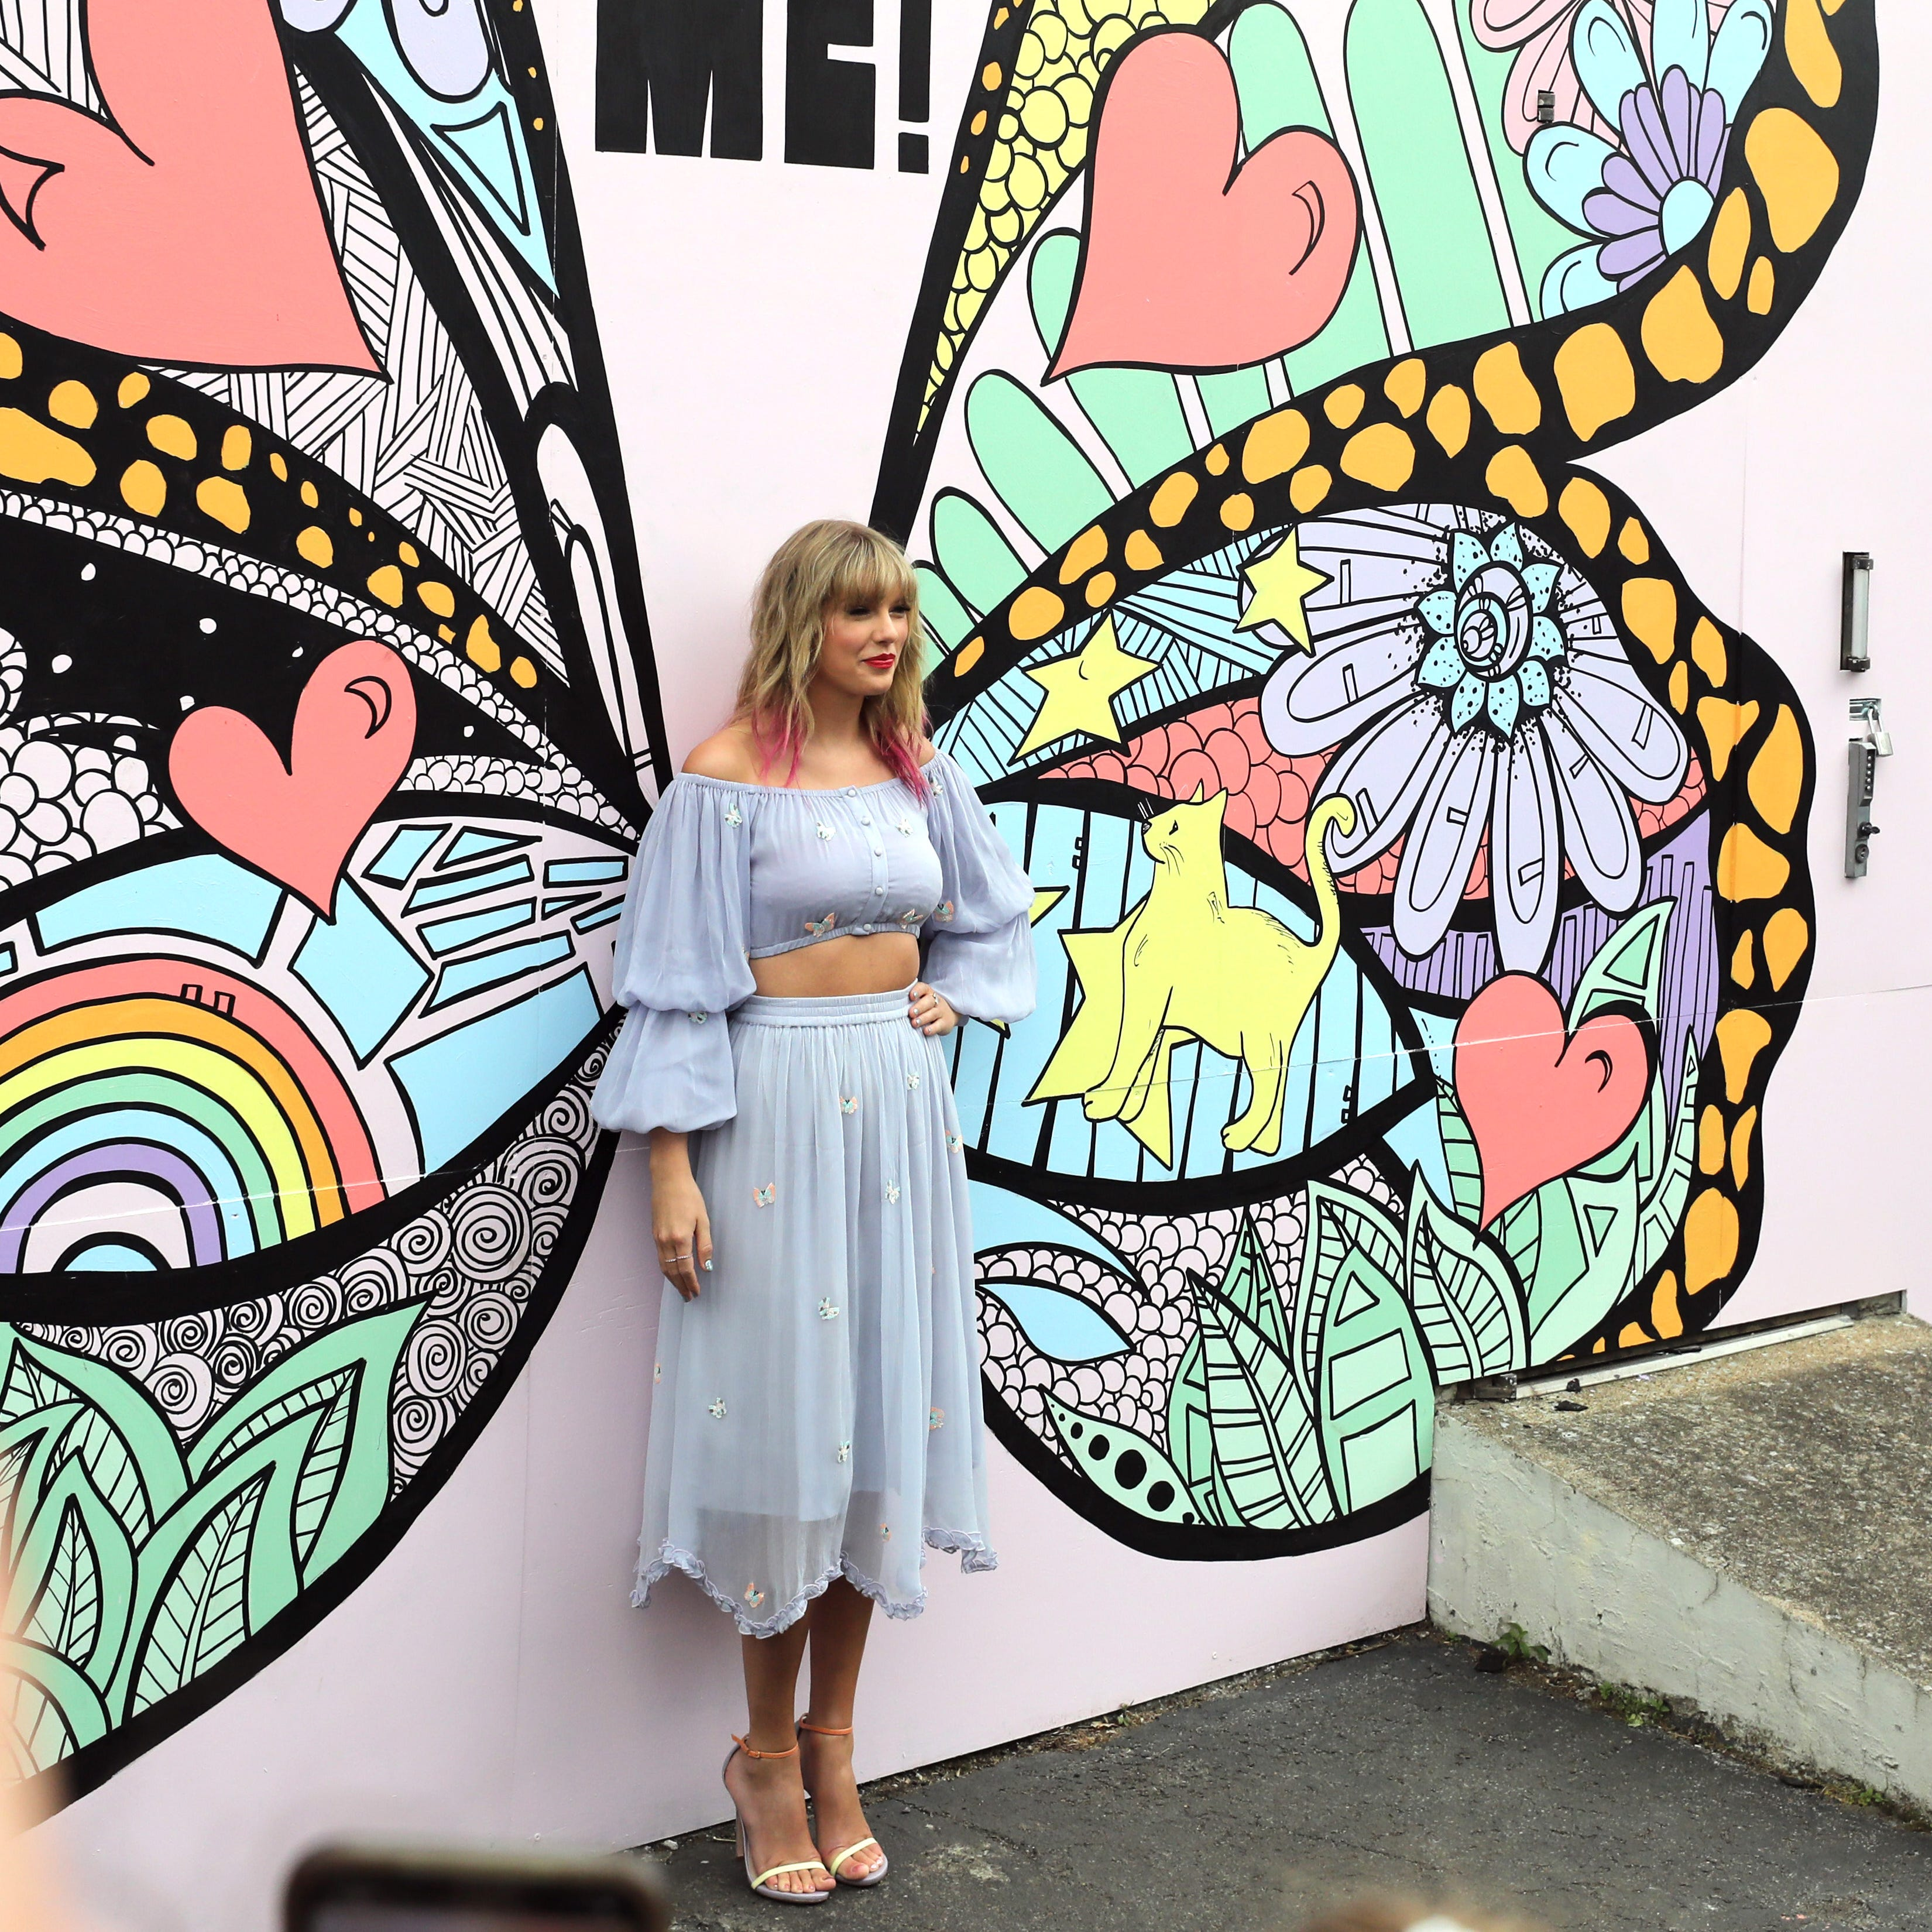 Taylor Swift poses at a butterfly mural in...